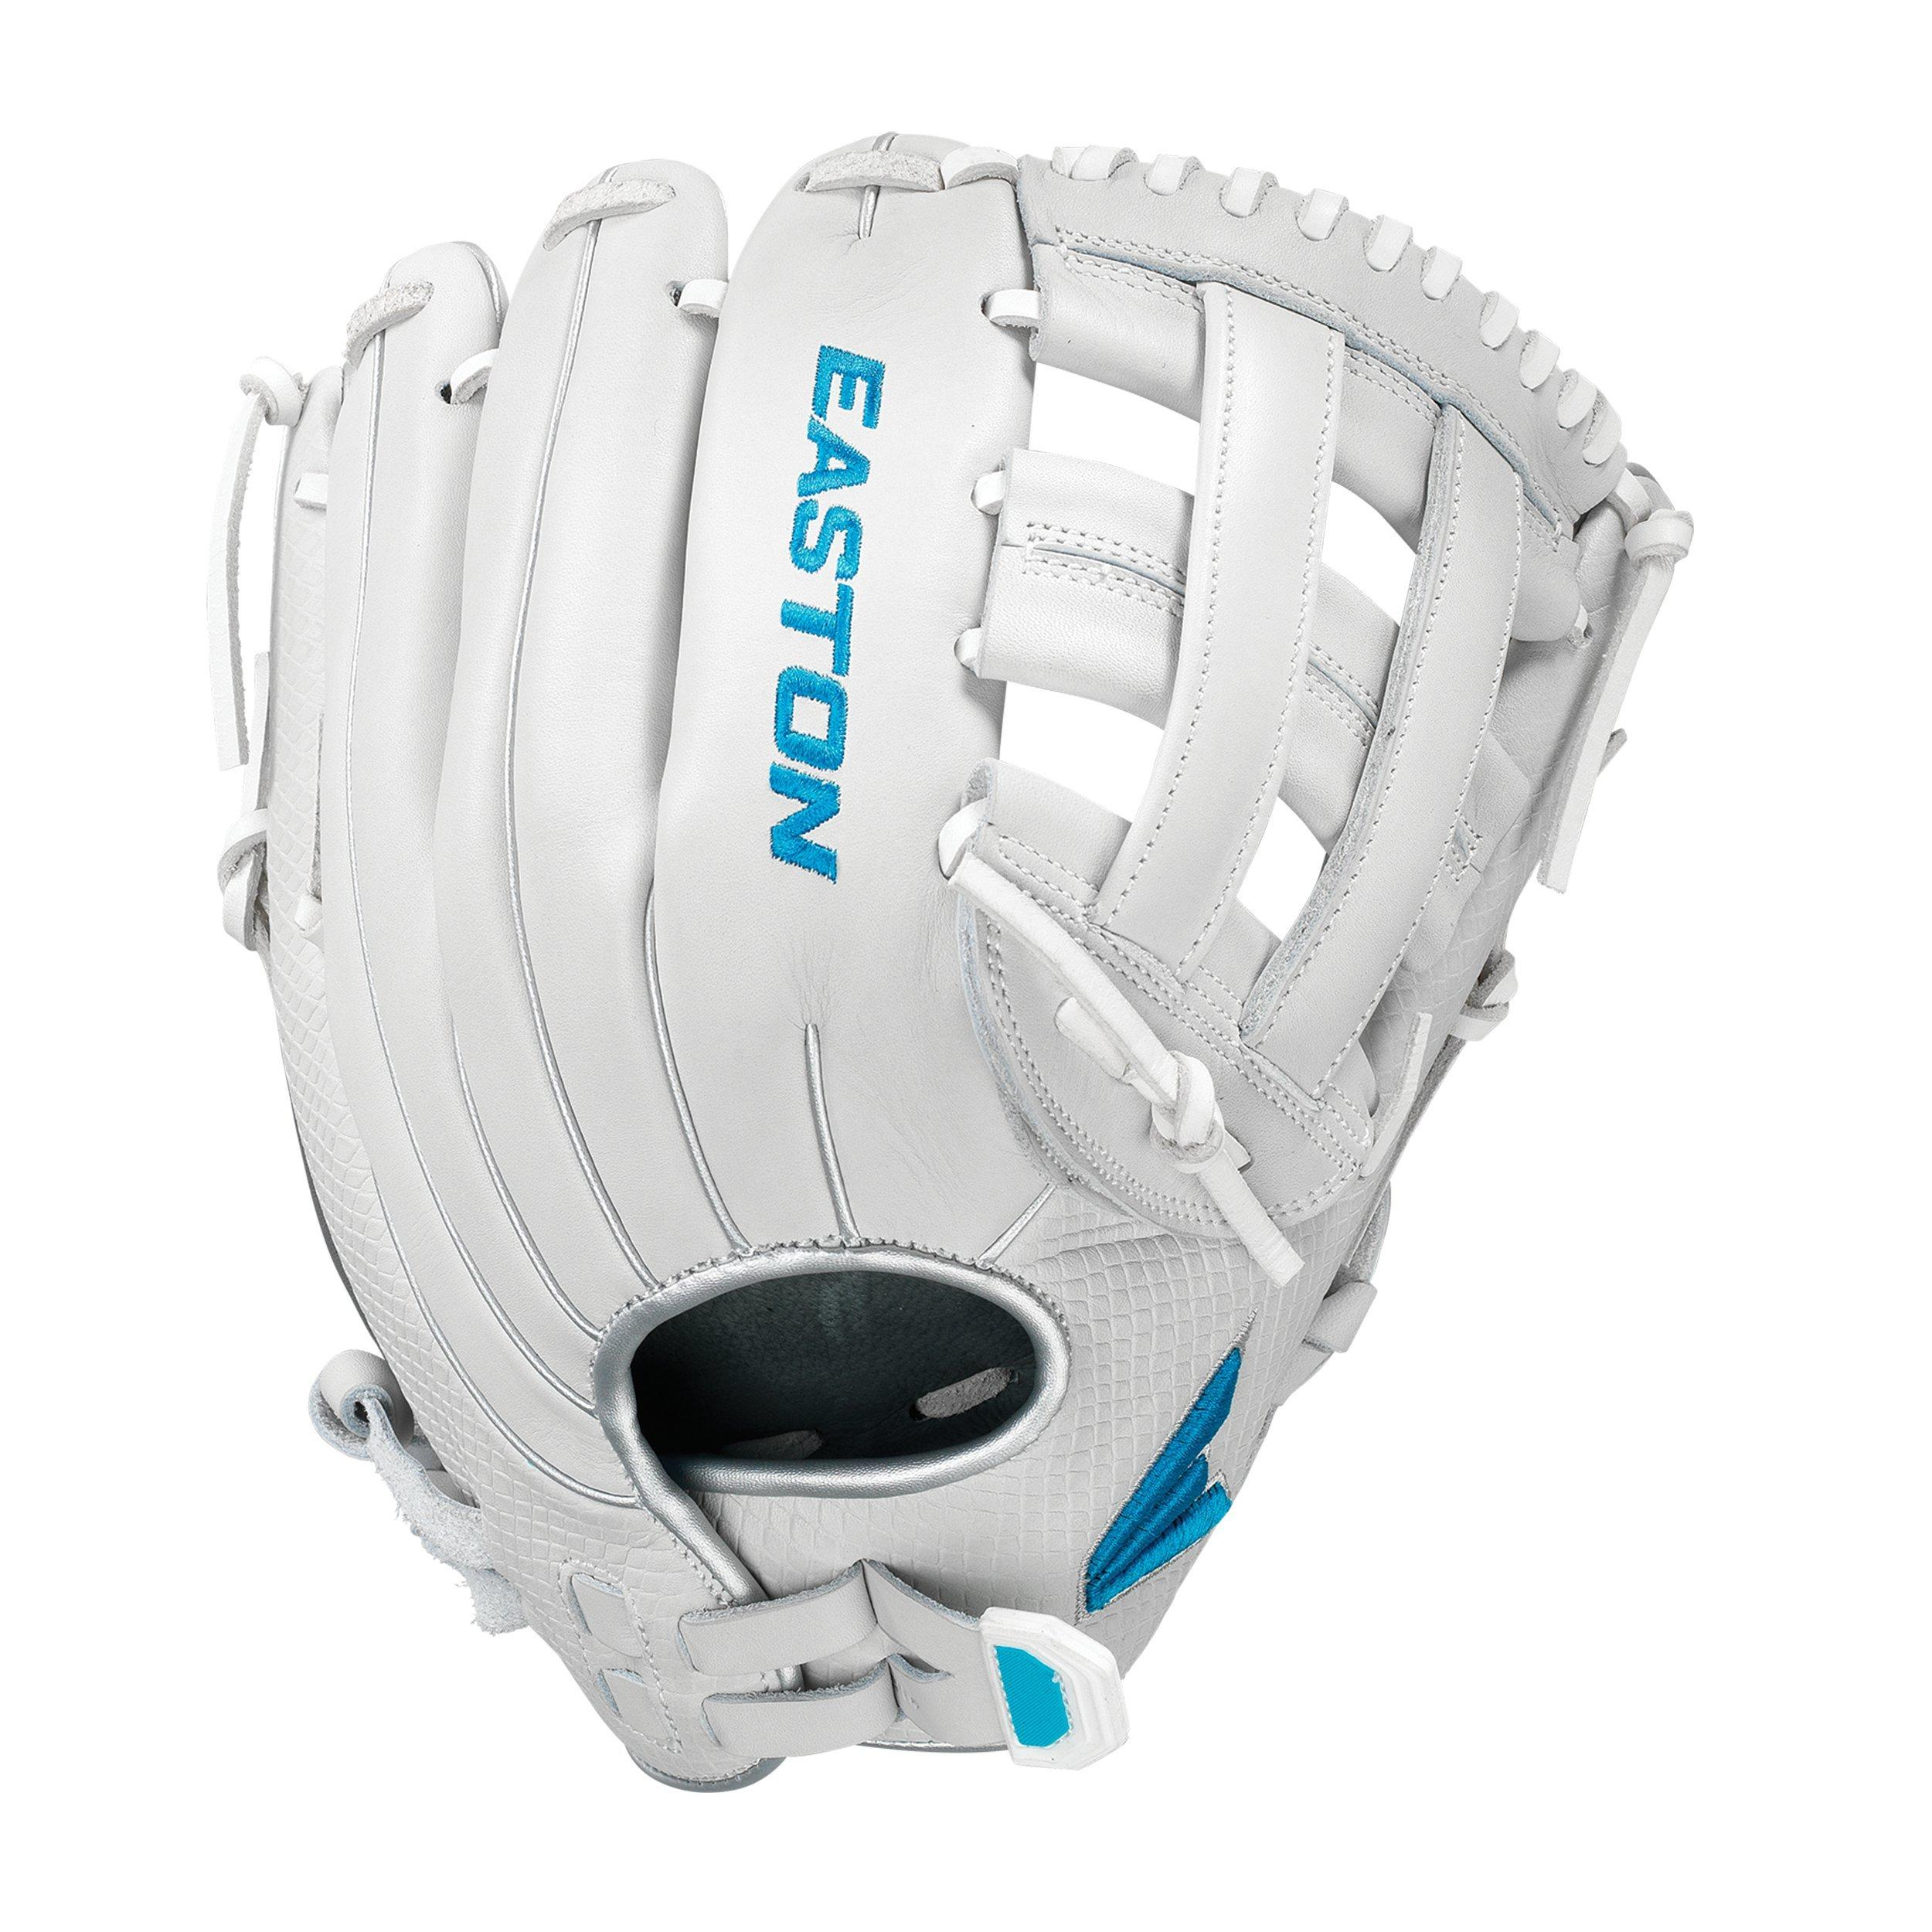 easton-ghost-tournament-elite-fastpitch-softball-glove-11-75-inch-right-hand-throw GTEFP1175-RightHandThrow   <span>The Ghost Tournament Elite Fastpitch Series gloves are built with the